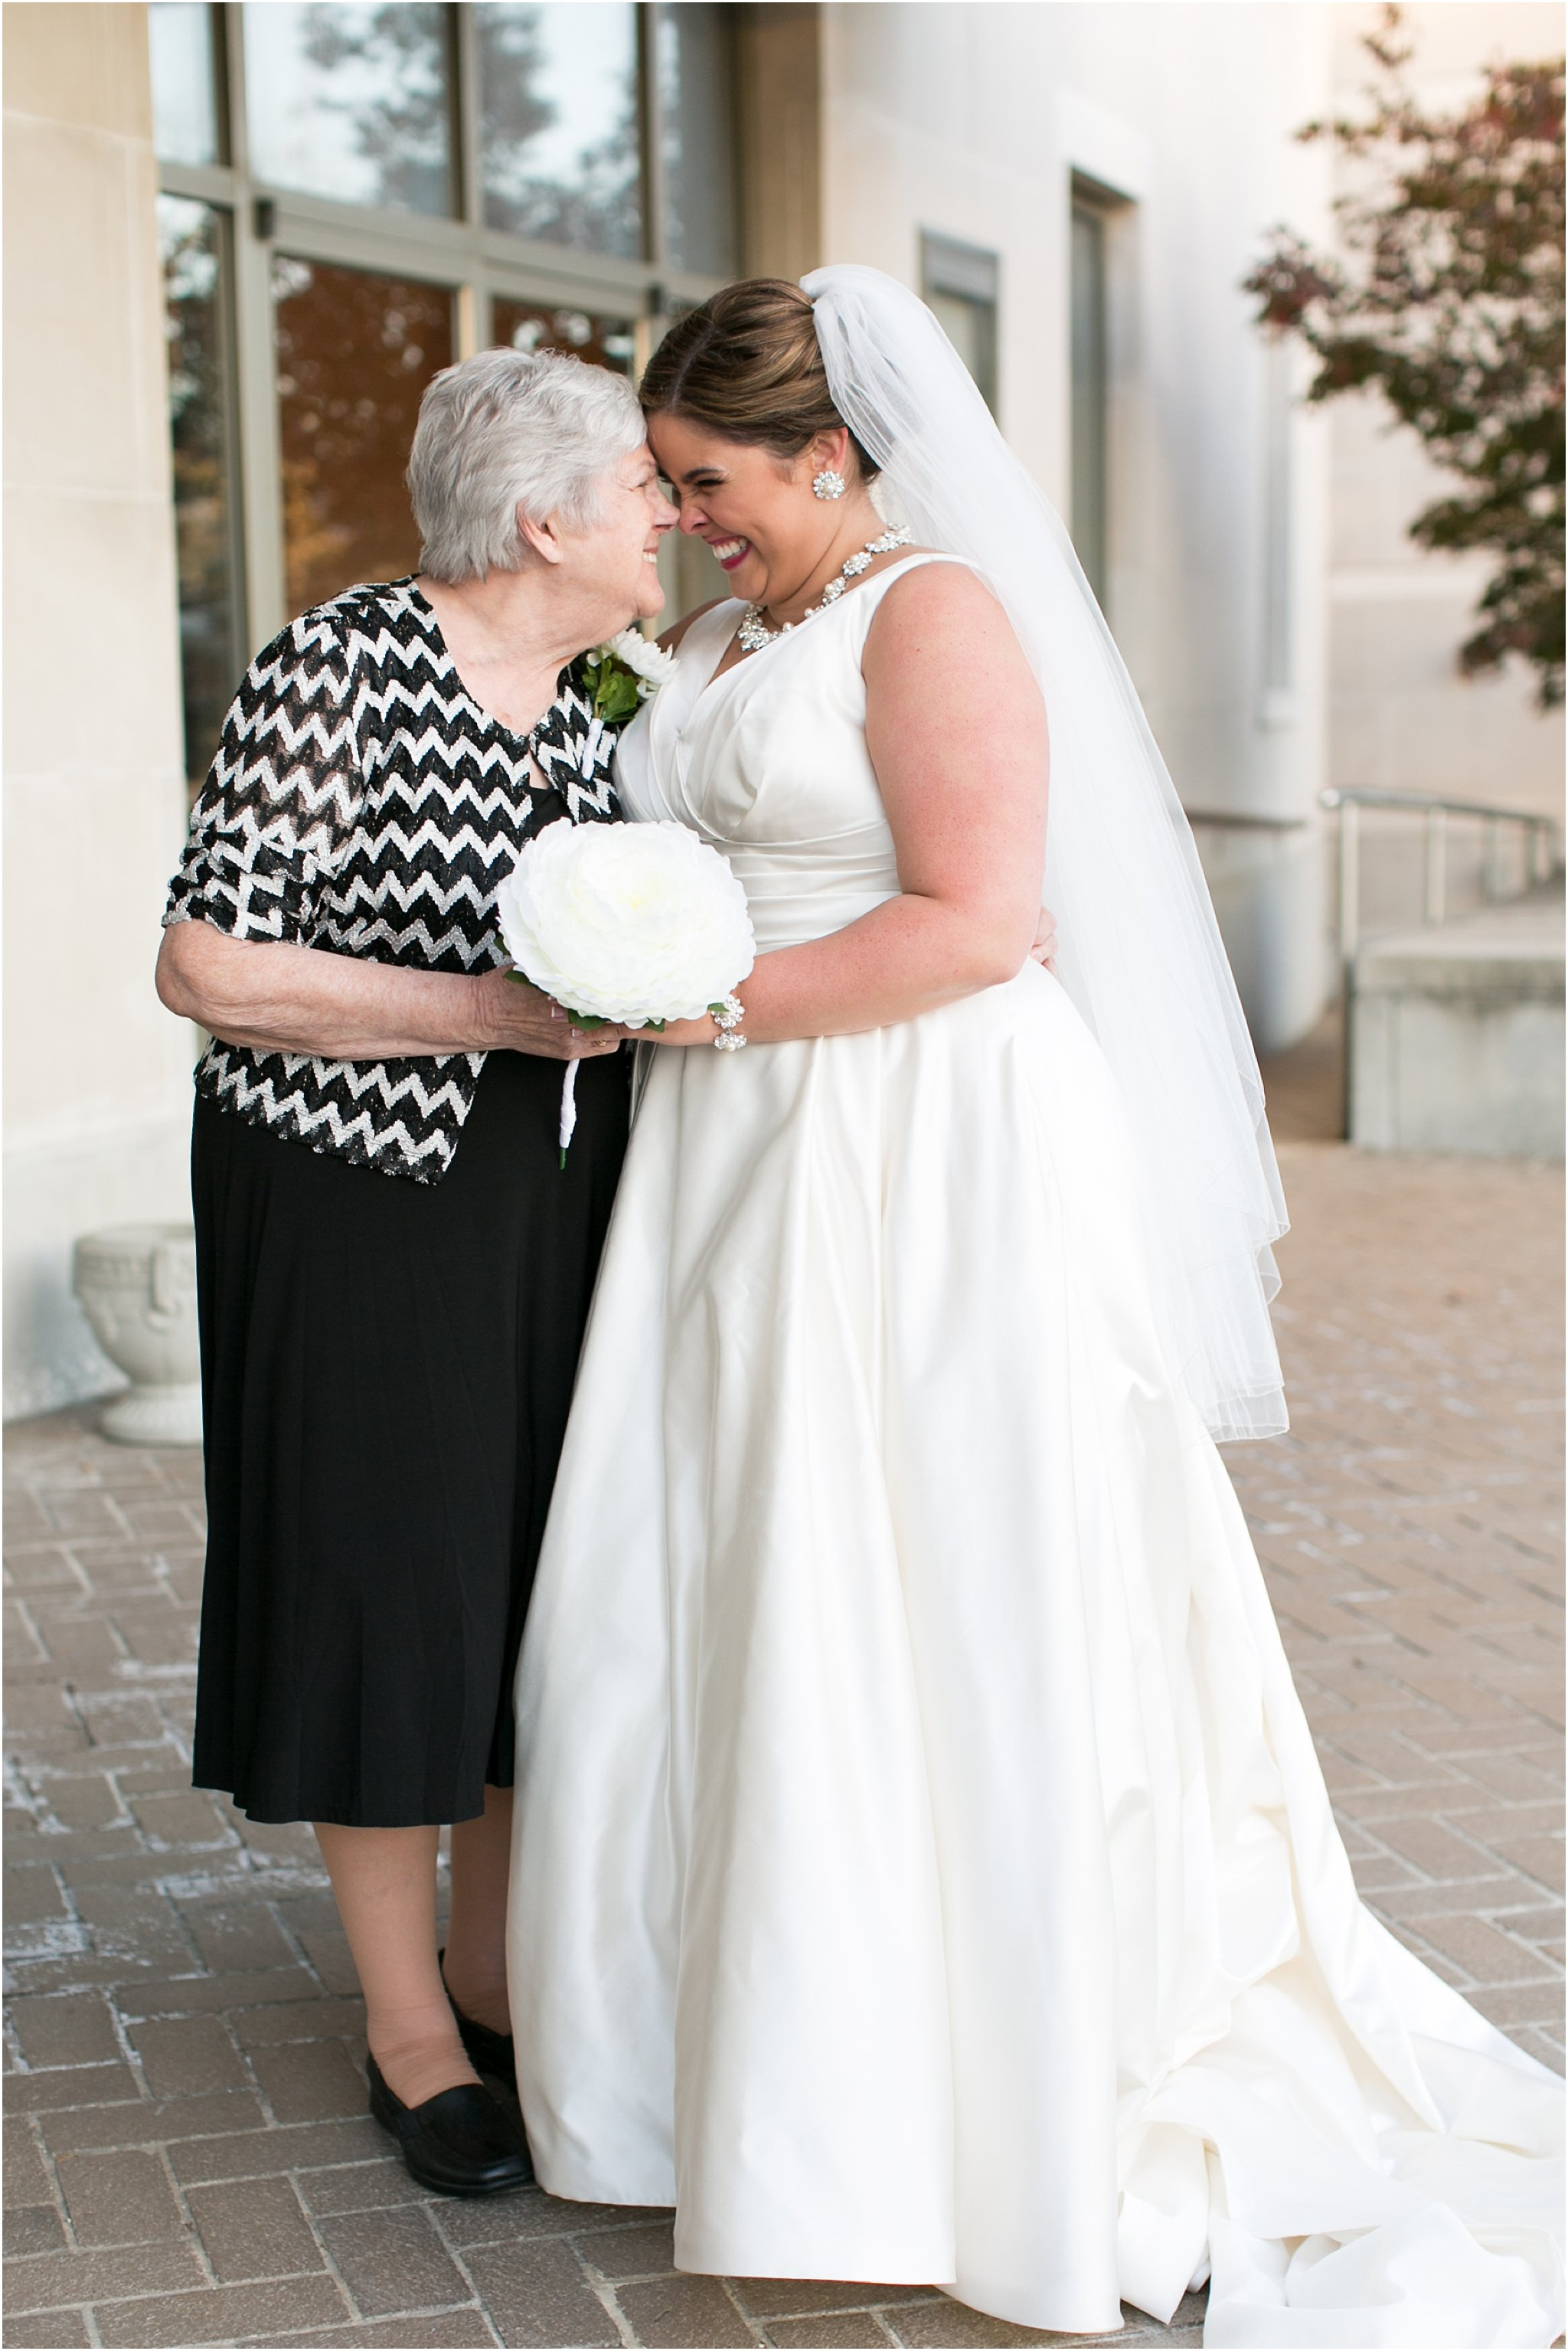 va_jessica_ryan_photography_virginia_wedding_norfolk_harrison_opera_house_norfolk_arts_district_portraits_3792